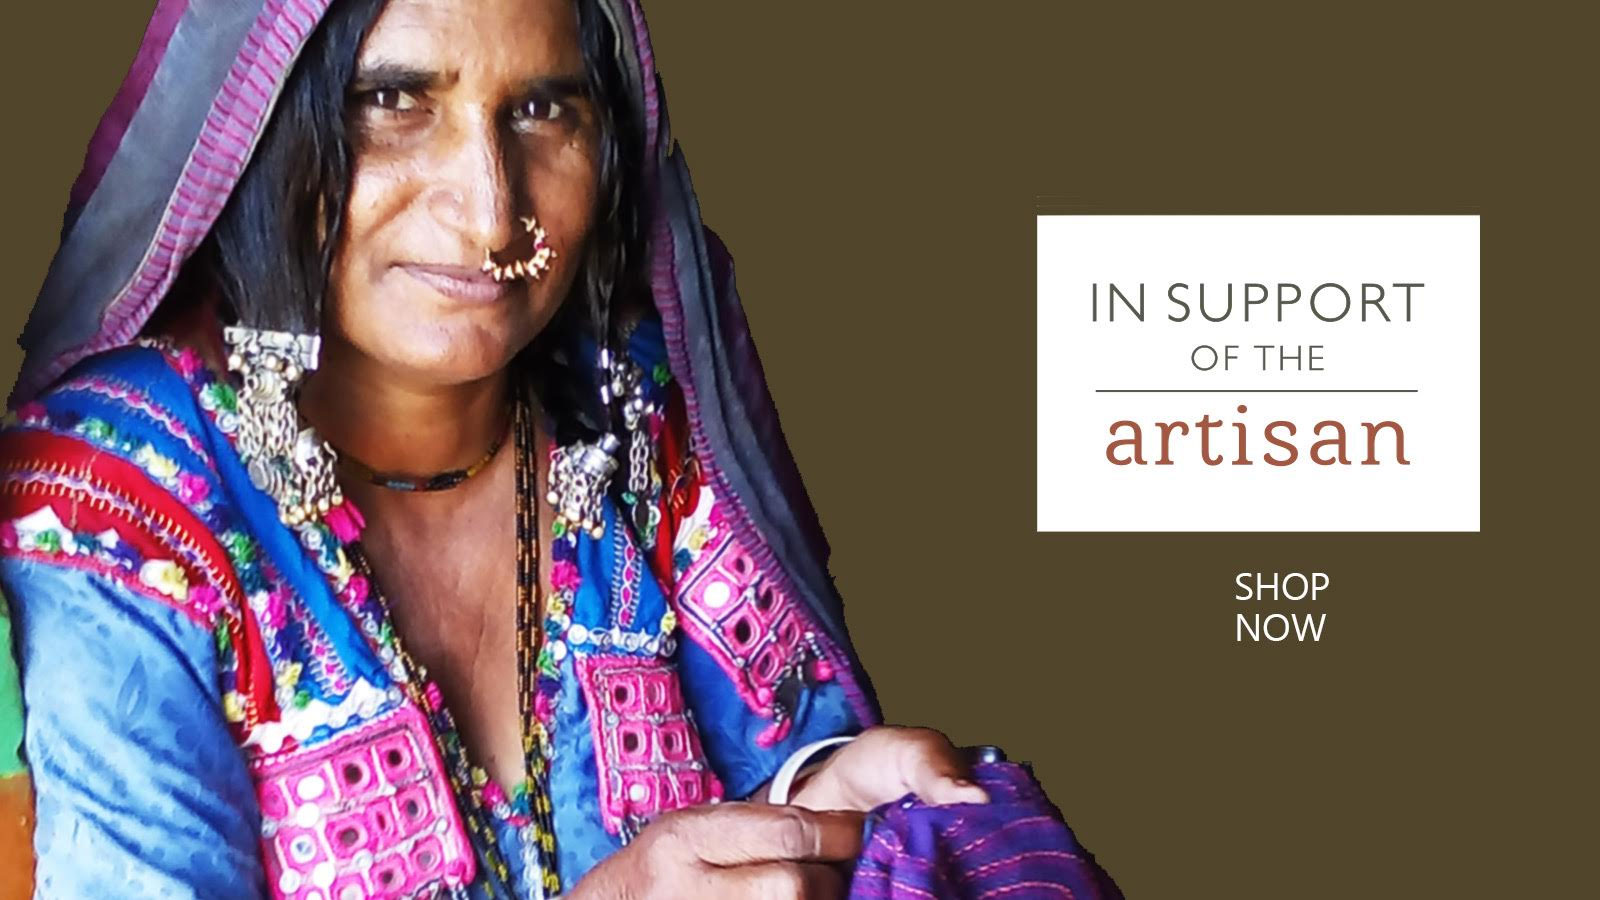 In Support of the Artisan